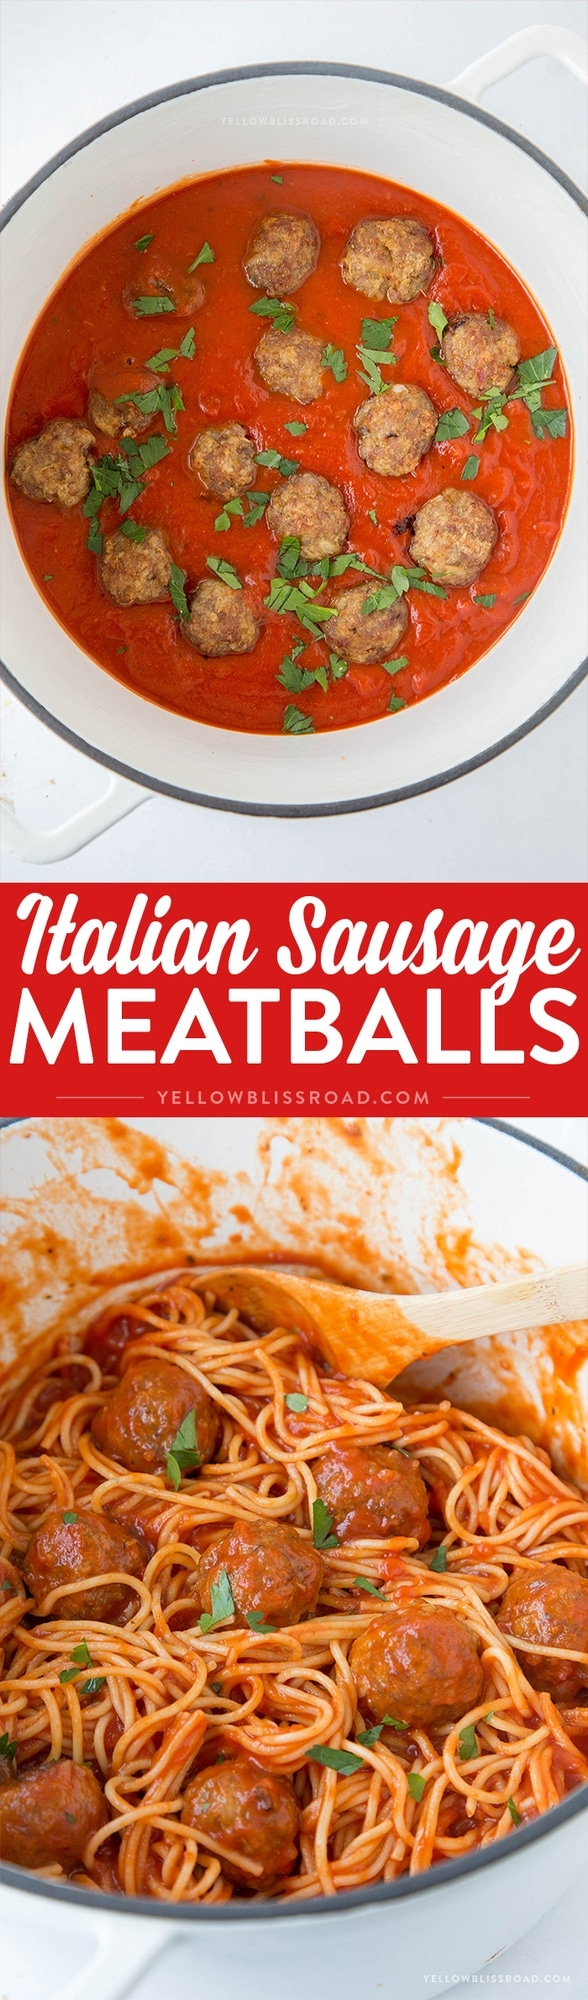 Baked Italian Sausage Meatballs - Just a few ingredients turn spaghetti night from boring to fabulous! Easy enough for weeknight dinners.